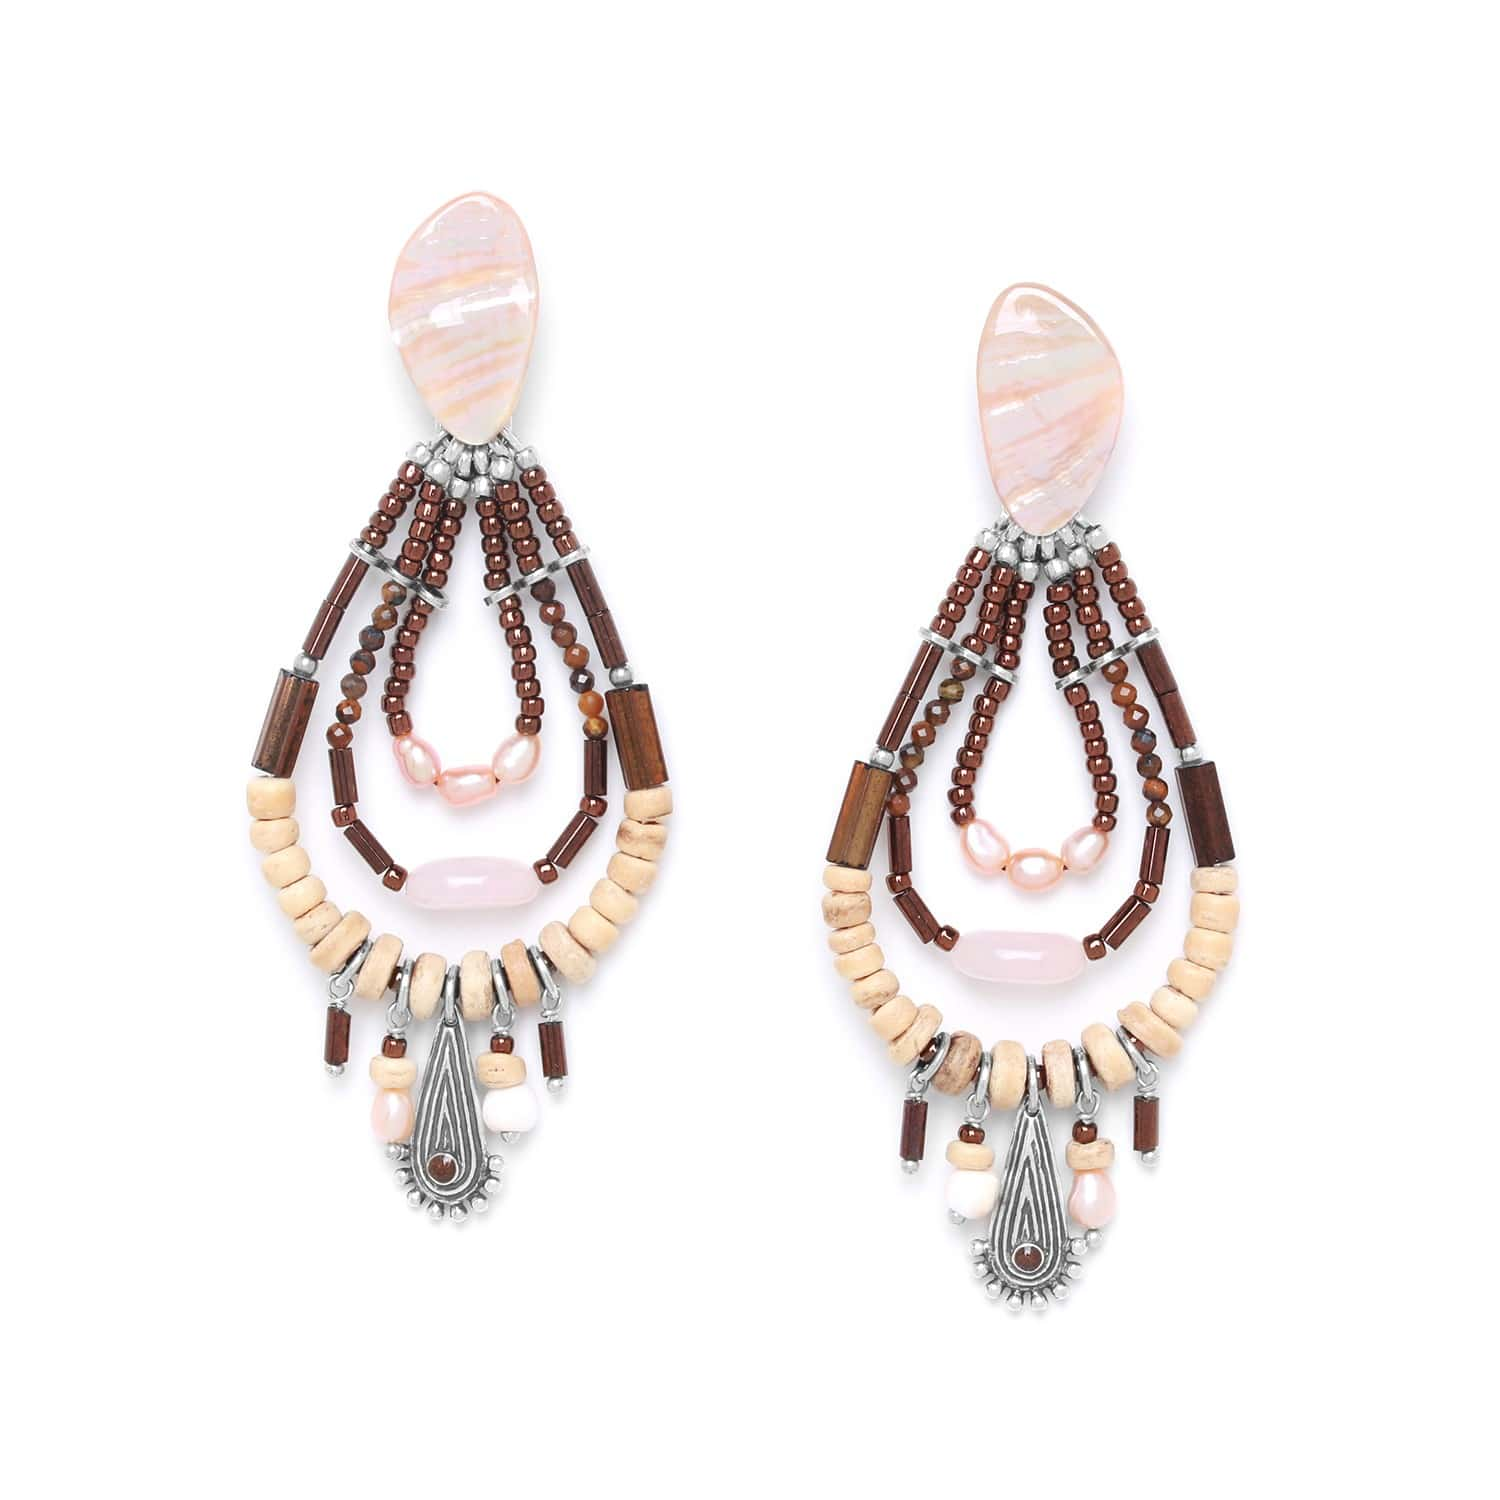 TERRE DOUCE three loop earrings with dangles